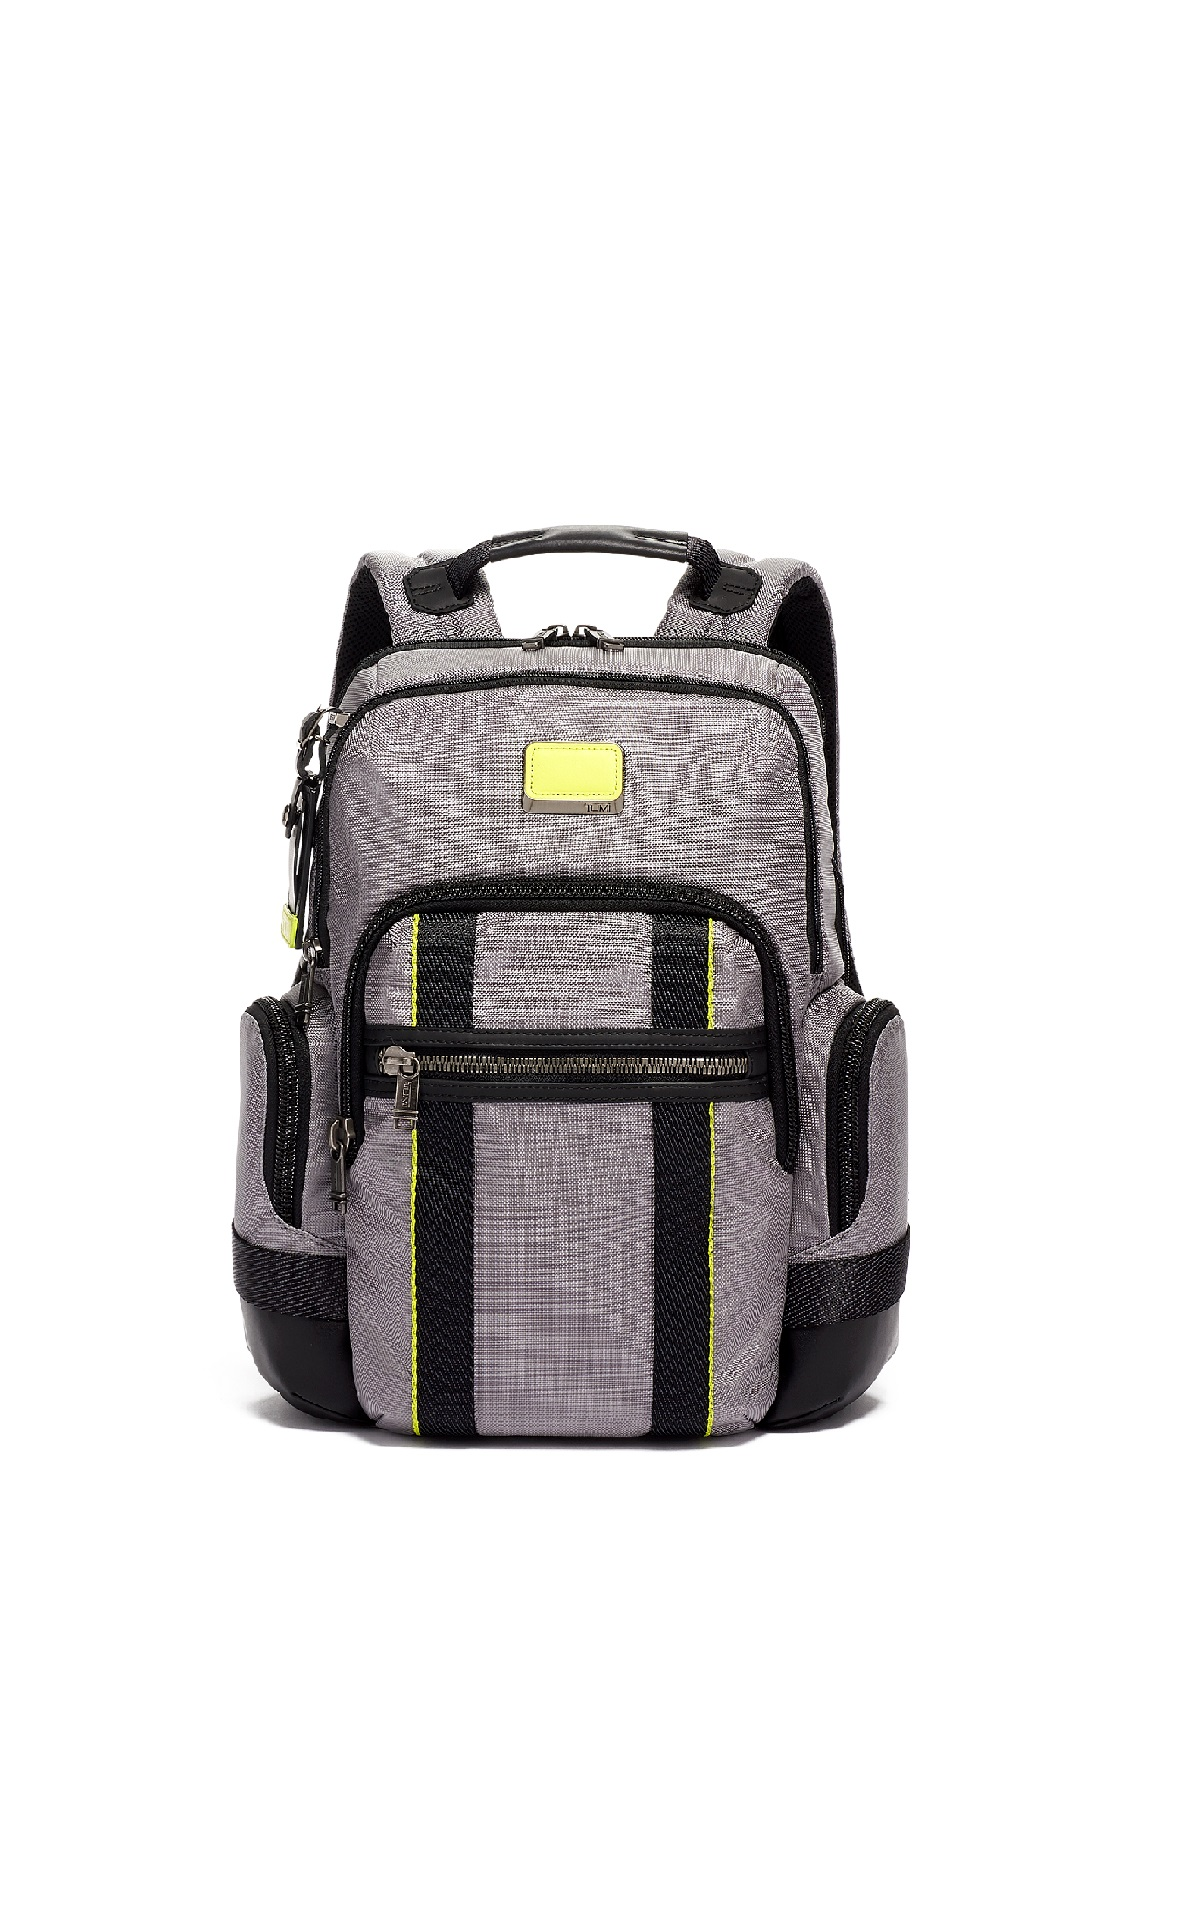 Nathan backpack Tumi